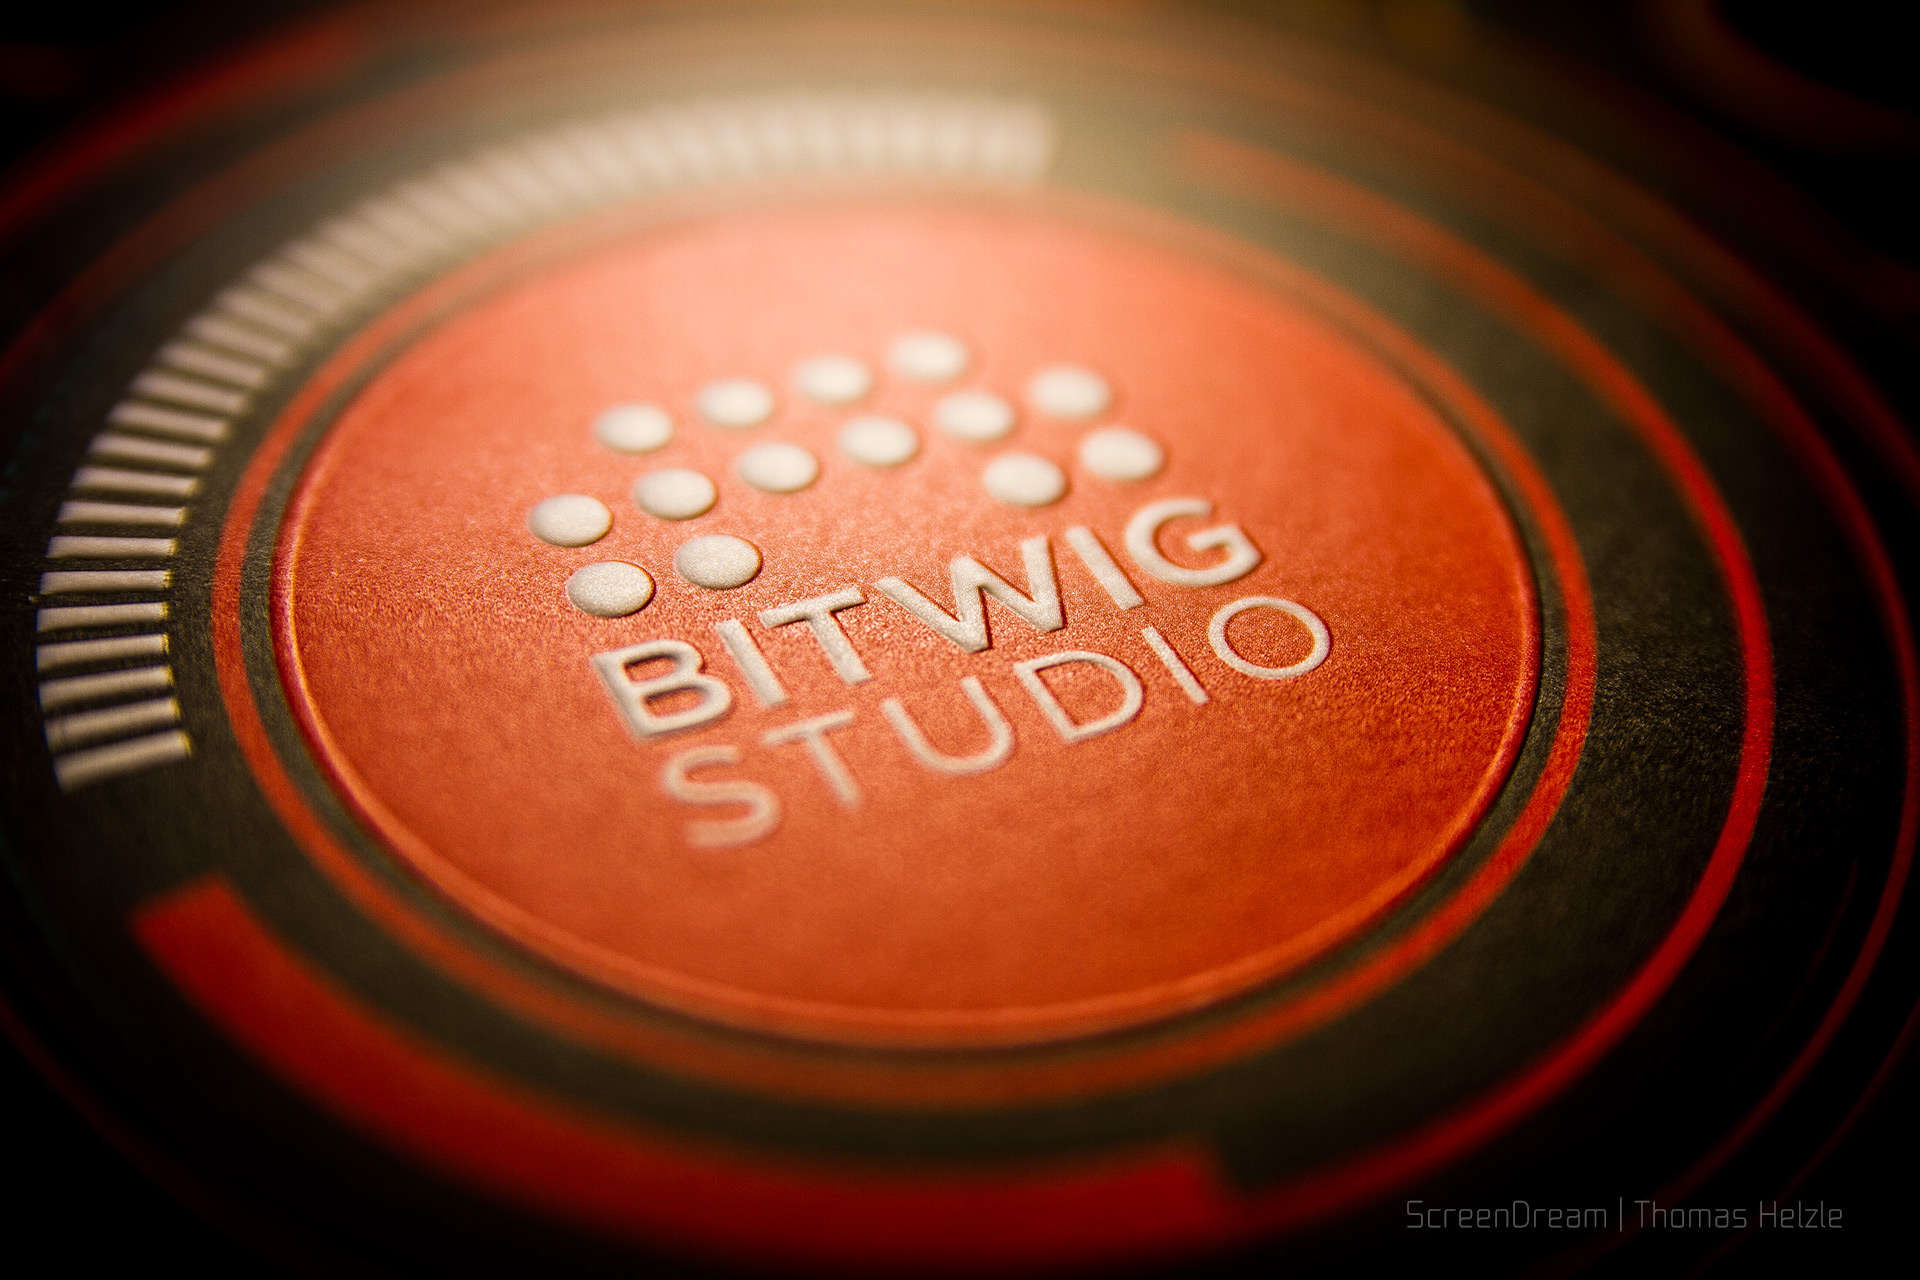 Bitwig: um DAW pra se levar a sério Ableton Live, ACE, Apple, arturia, Askvideo, beatport, bitwig, bitwig studio, Computermusic, Cristian Vogel, daw, Detunized, Diva, linux, livid, Lynda.com, midi, Modeaudio, u-he, Unified Modulation System, vst, Windows